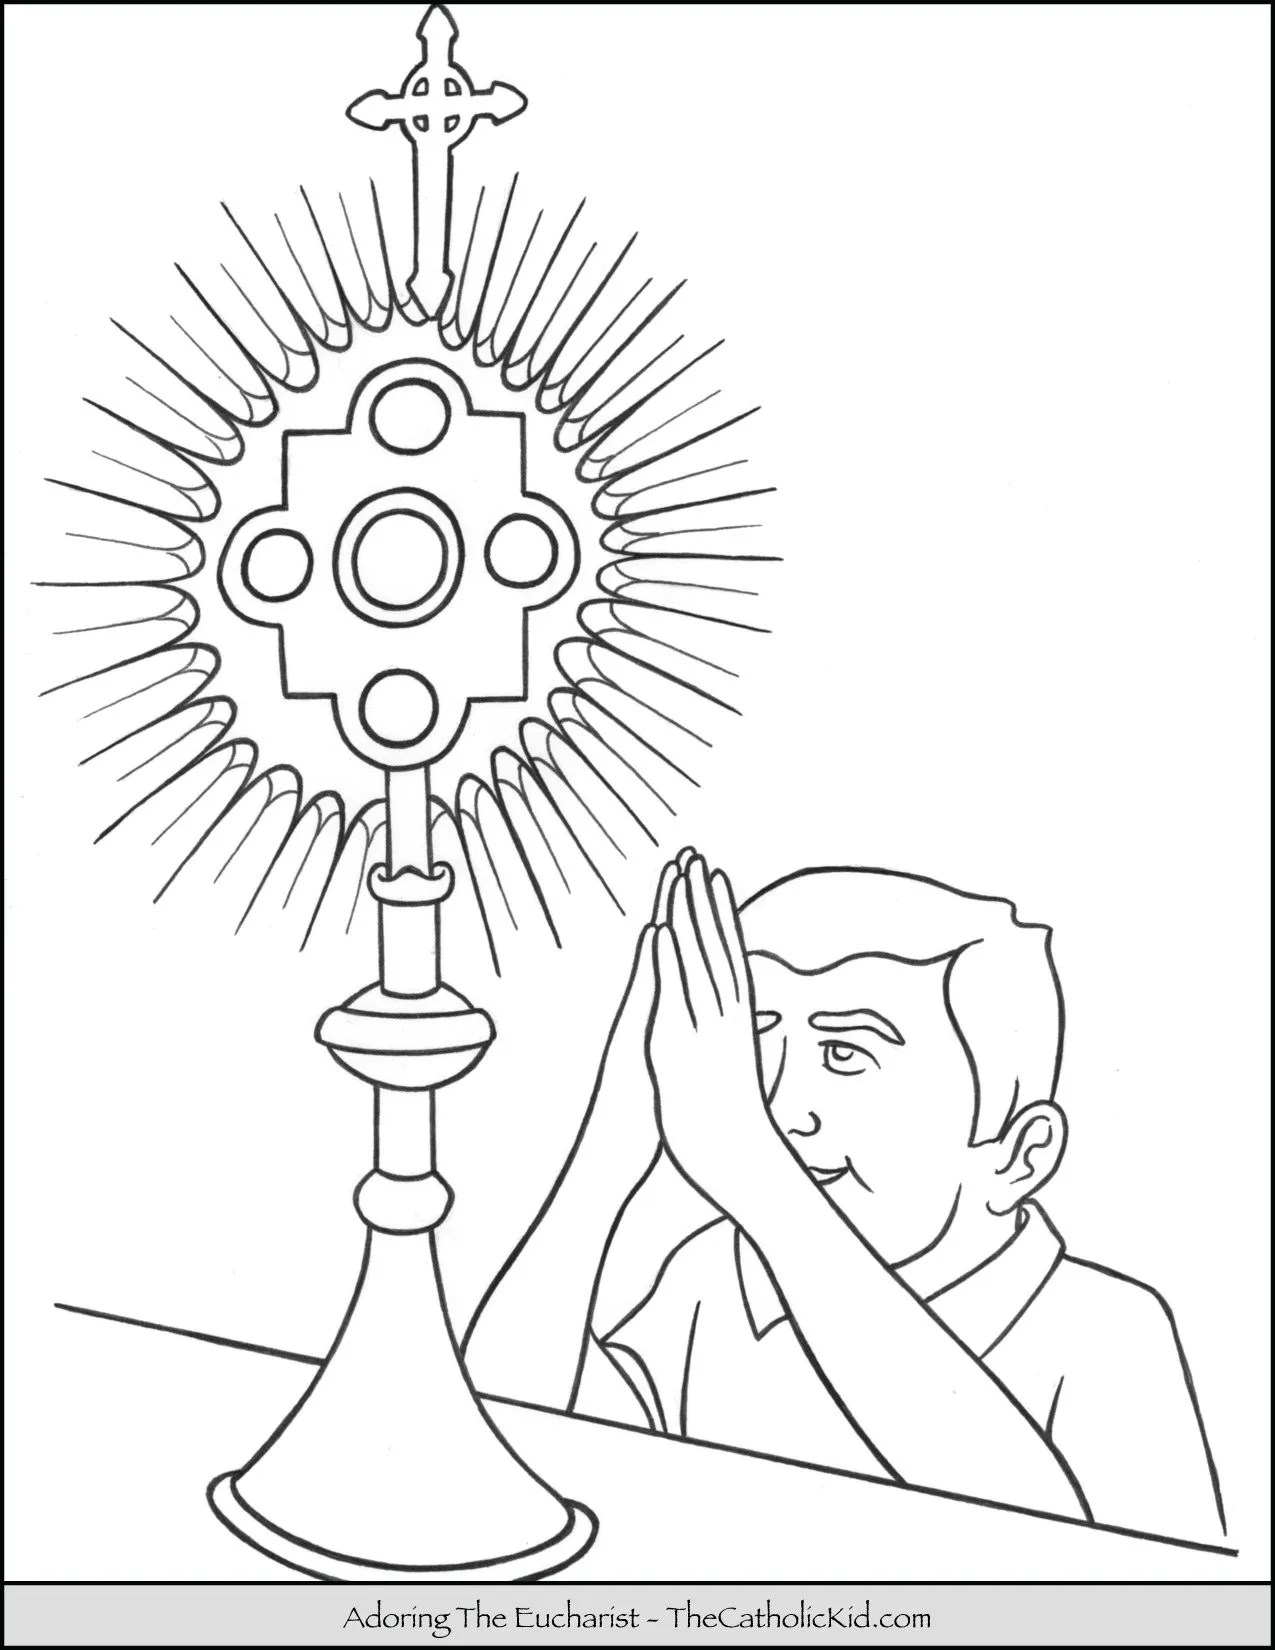 Child Adoring The Holy Eucharist Coloring Page